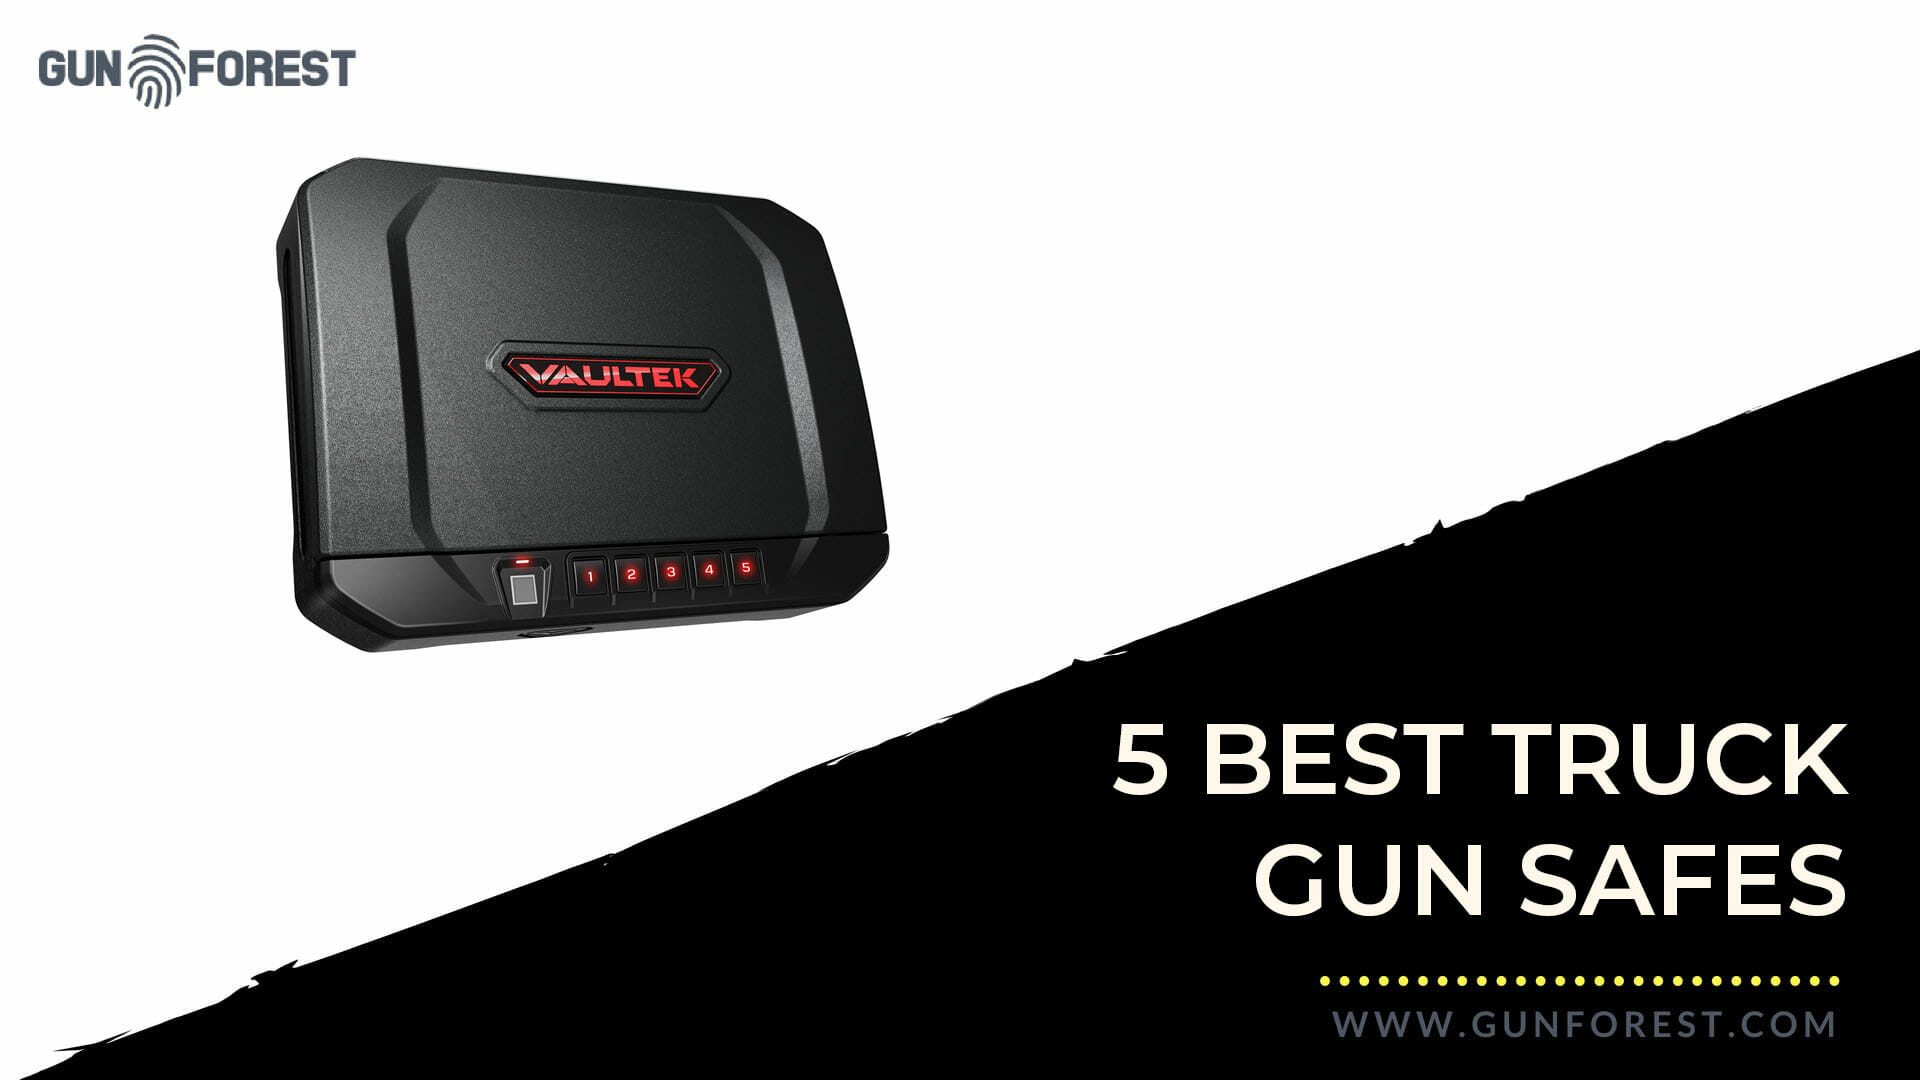 The 5 Best Truck Gun Safes